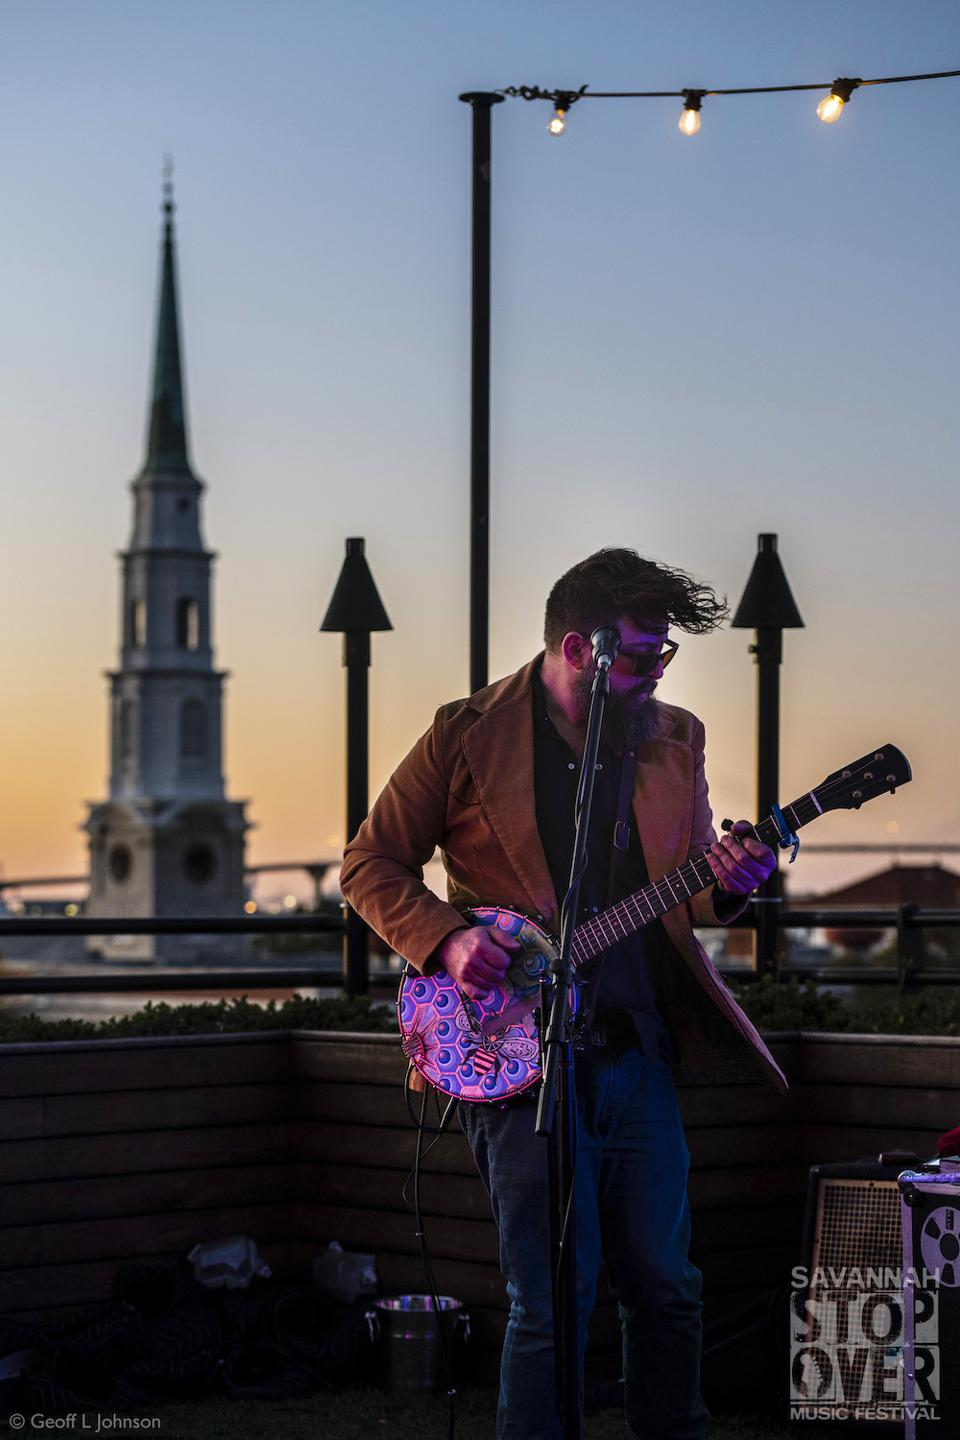 Tall Tall Trees playing music over the rooftops of Savannah.